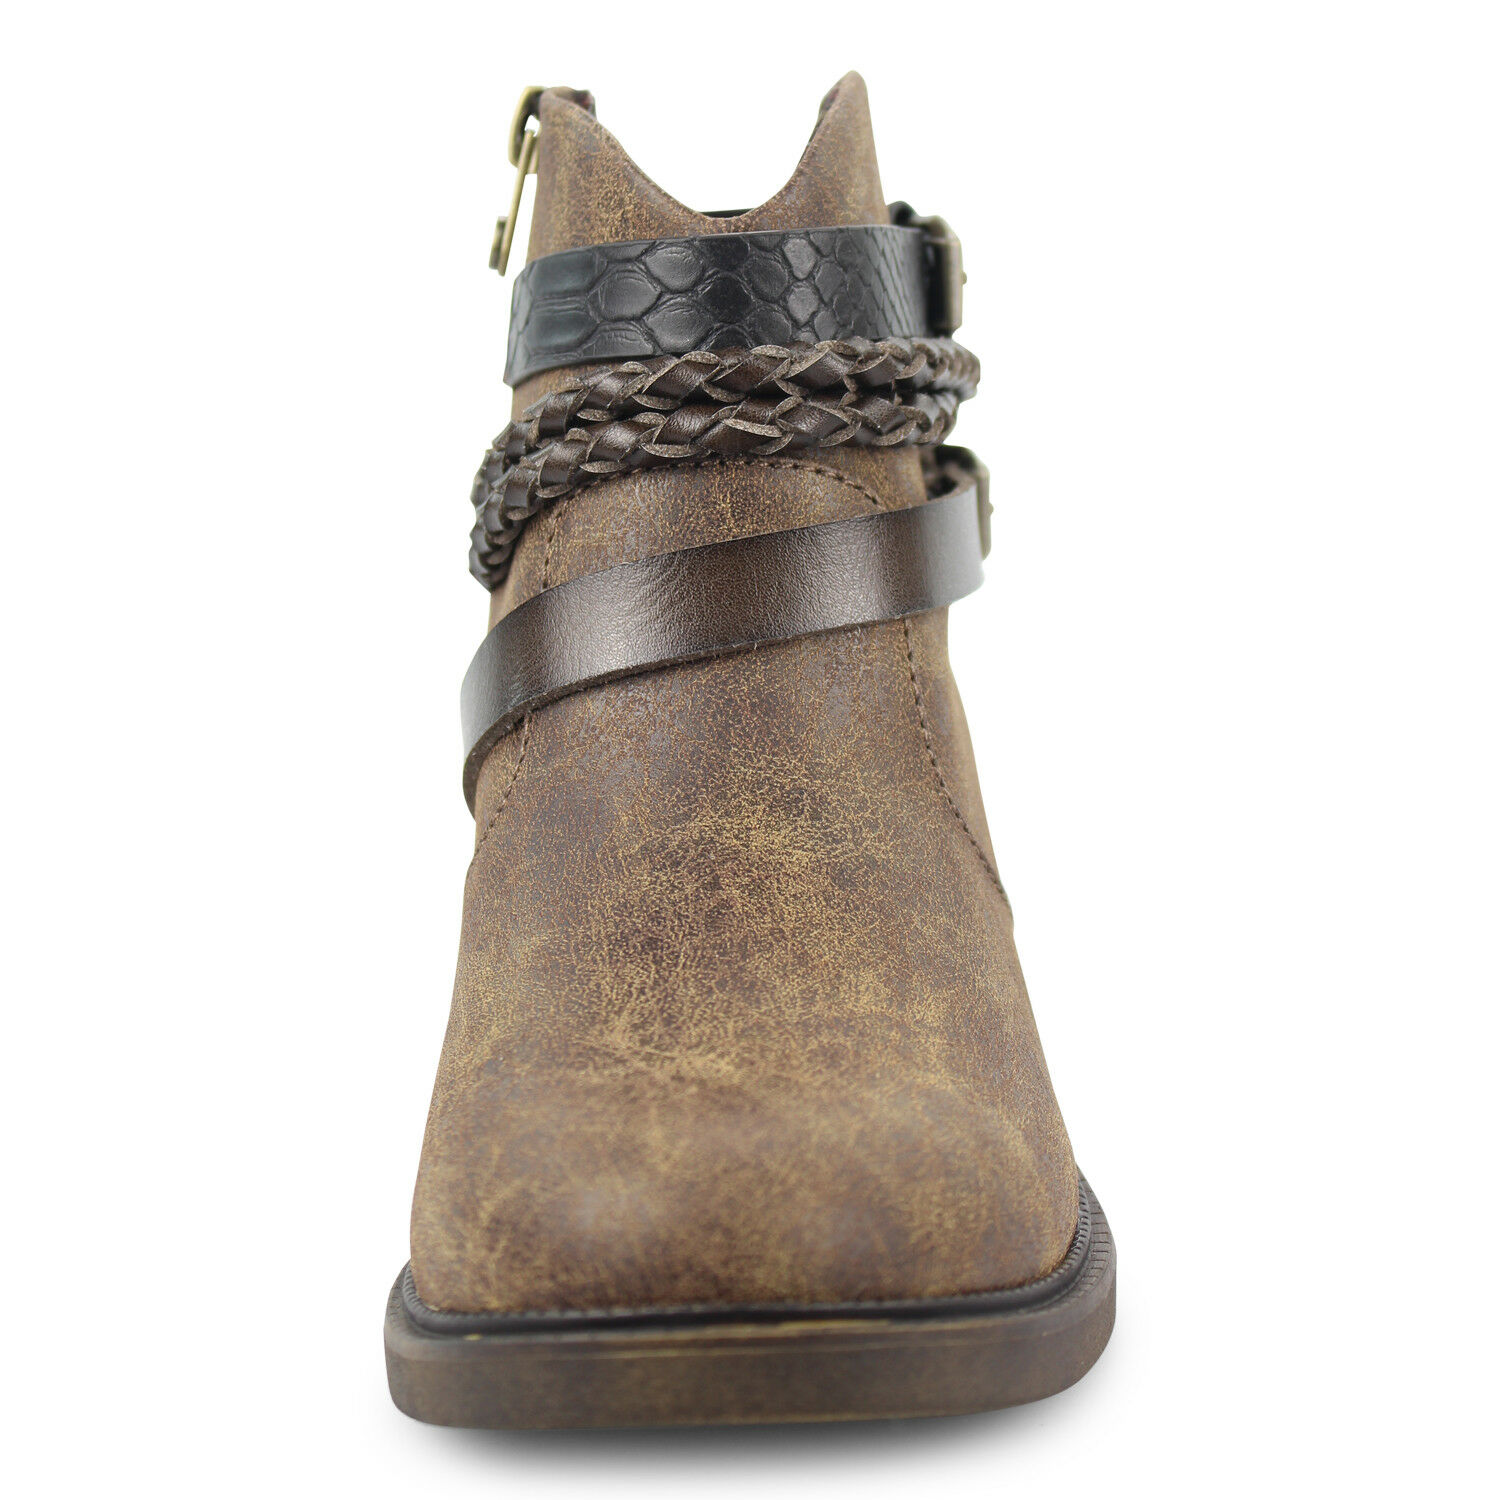 Blowfish Stiefel Malibu Damenschuhe Vianna Ankle Stiefel Blowfish Side Zip Up Niedrig Heel Fashion Schuhes 122764